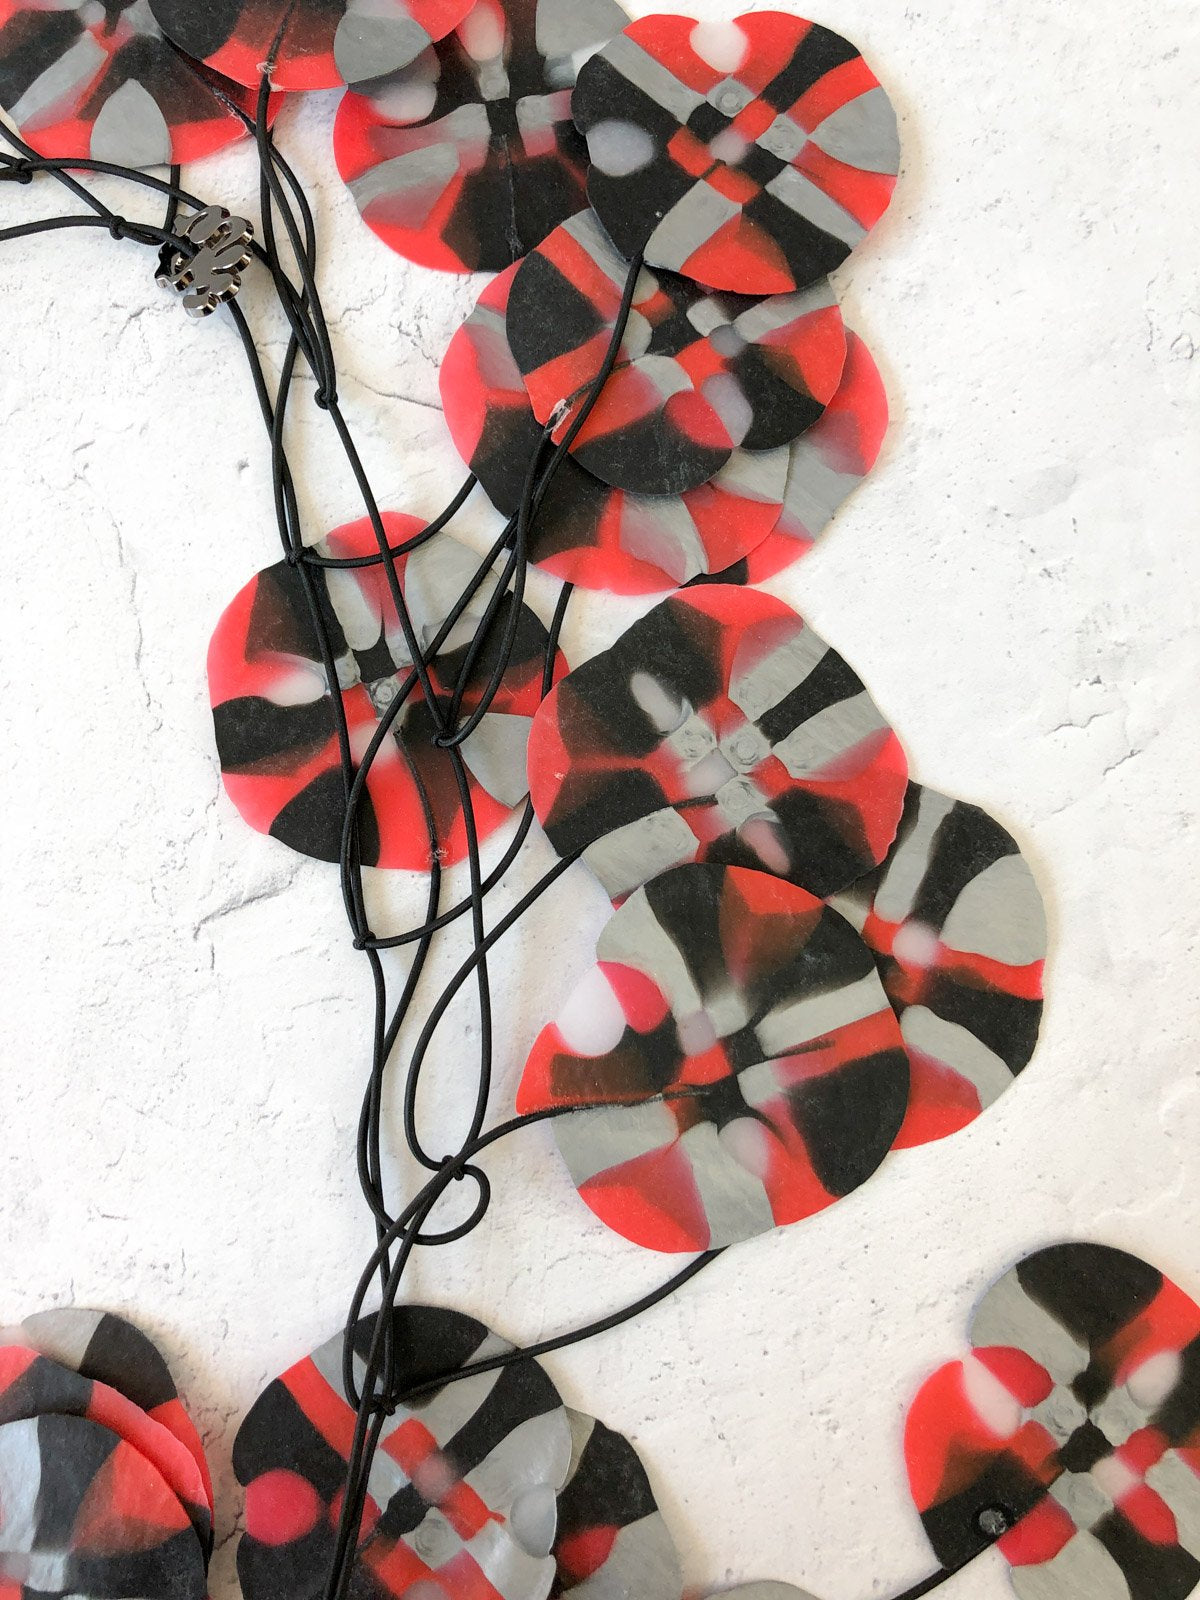 Ekeimenna By Annemieke Broenink - Huge Recycled Pansy Necklace - Red